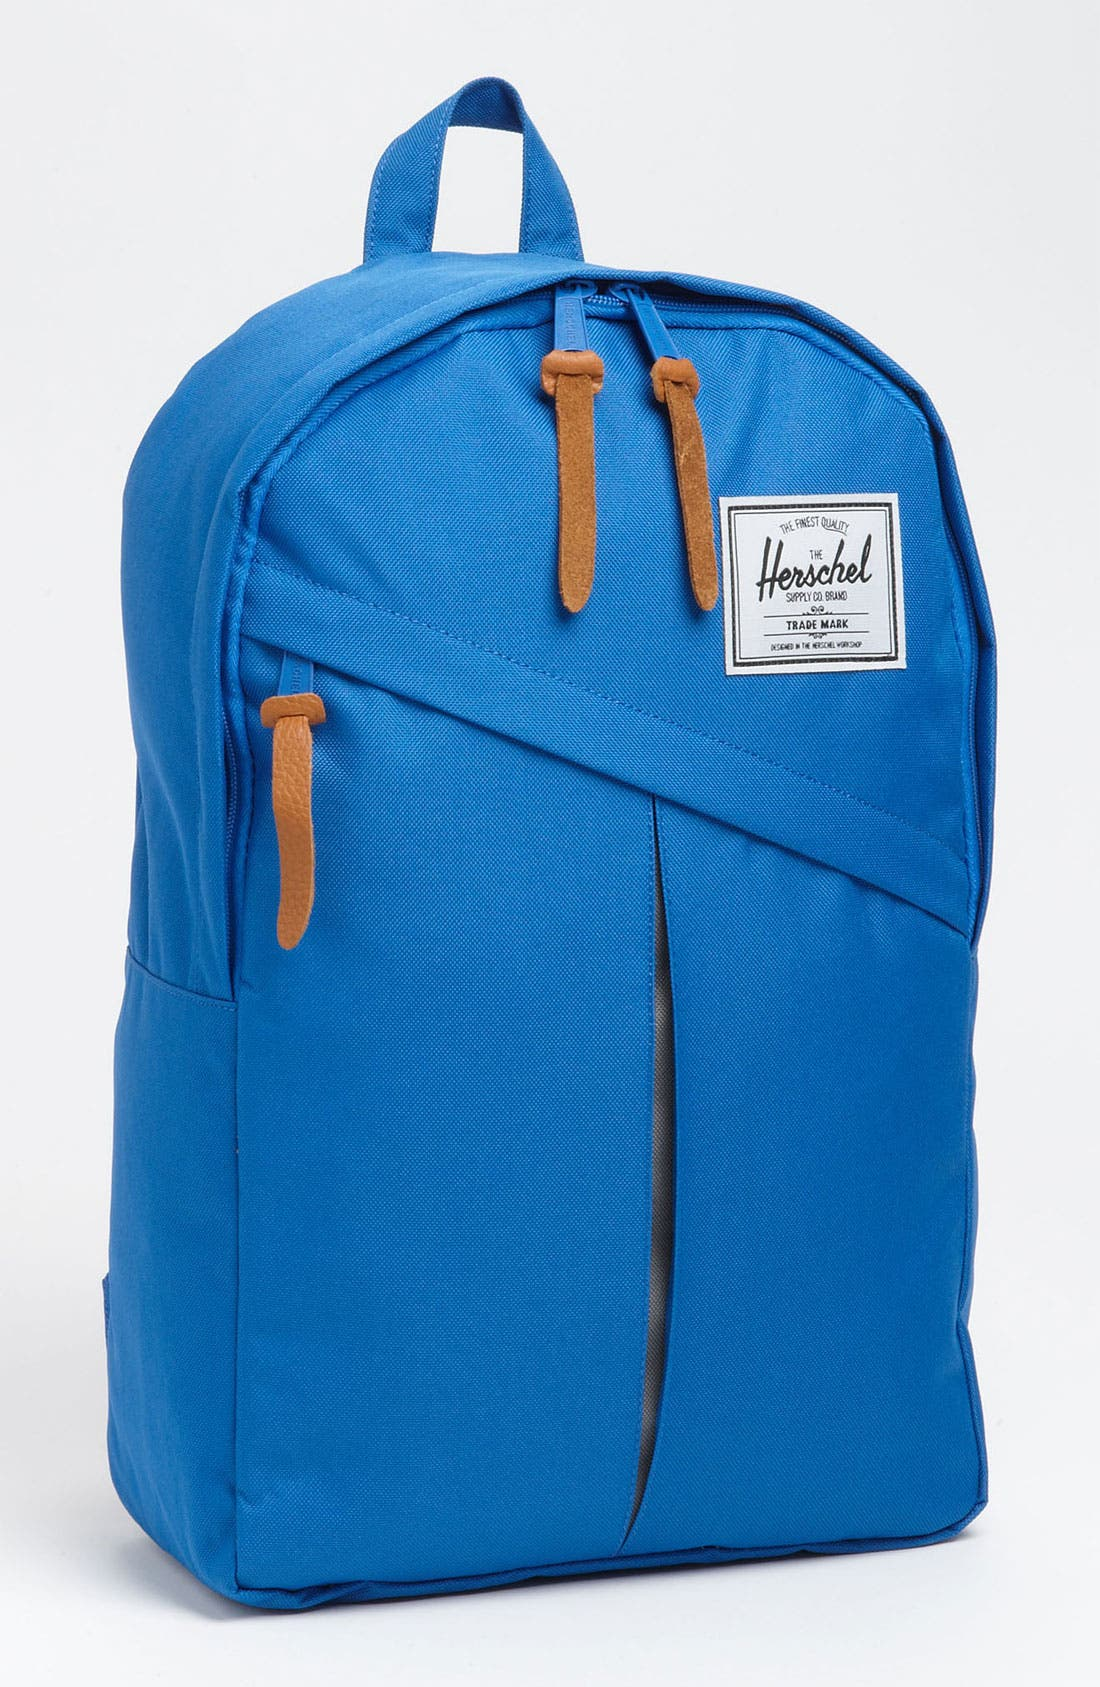 Alternate Image 1 Selected - Herschel Supply Co. 'Parker' Backpack